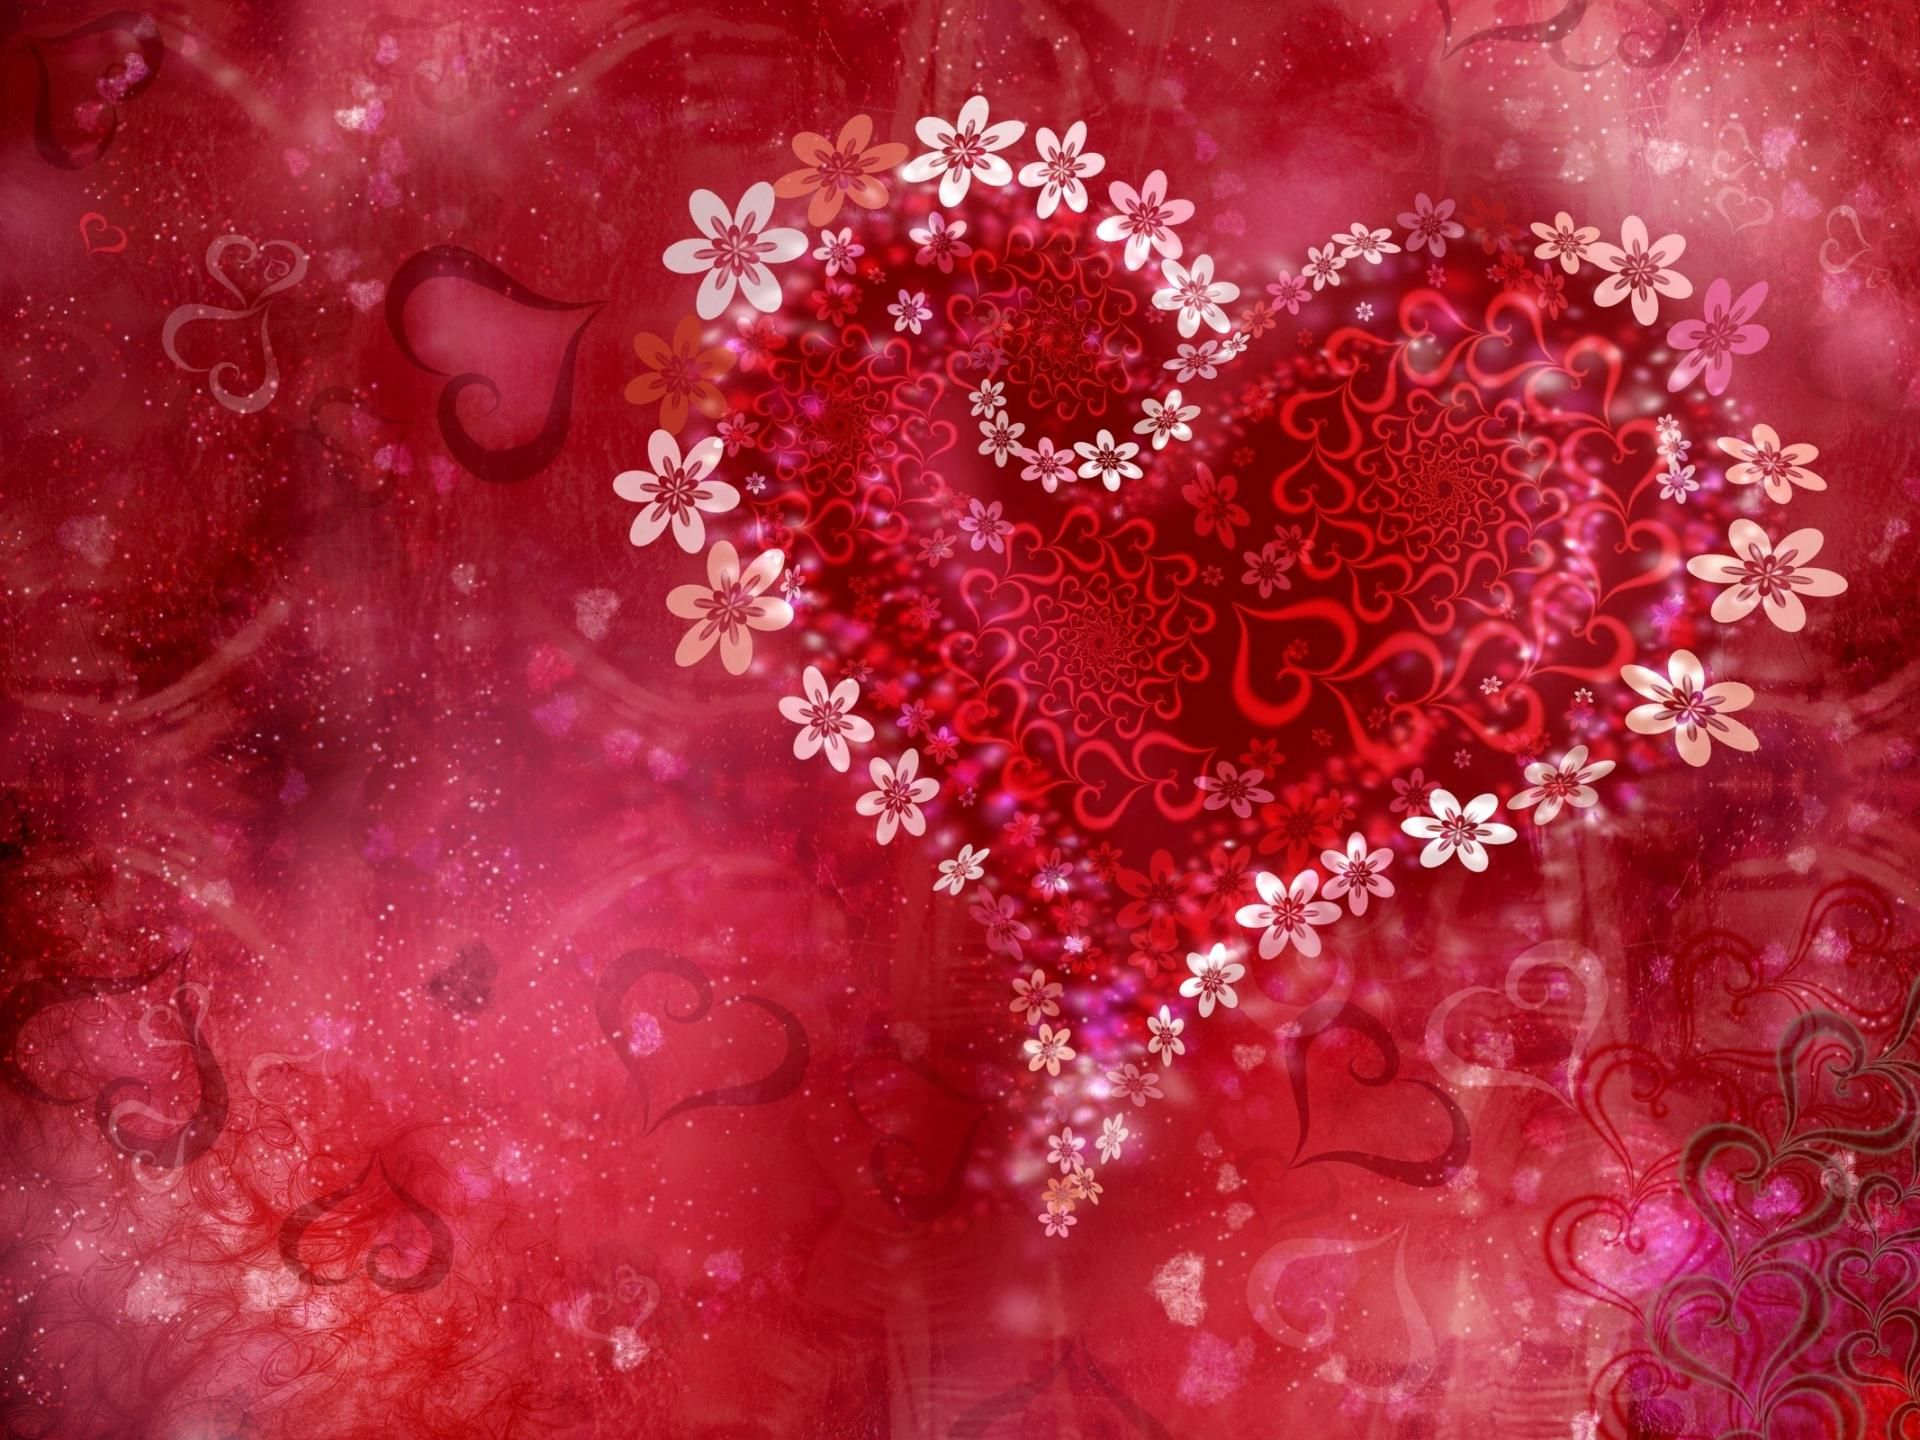 133 best hearts images on pinterest heart images gifs and animation